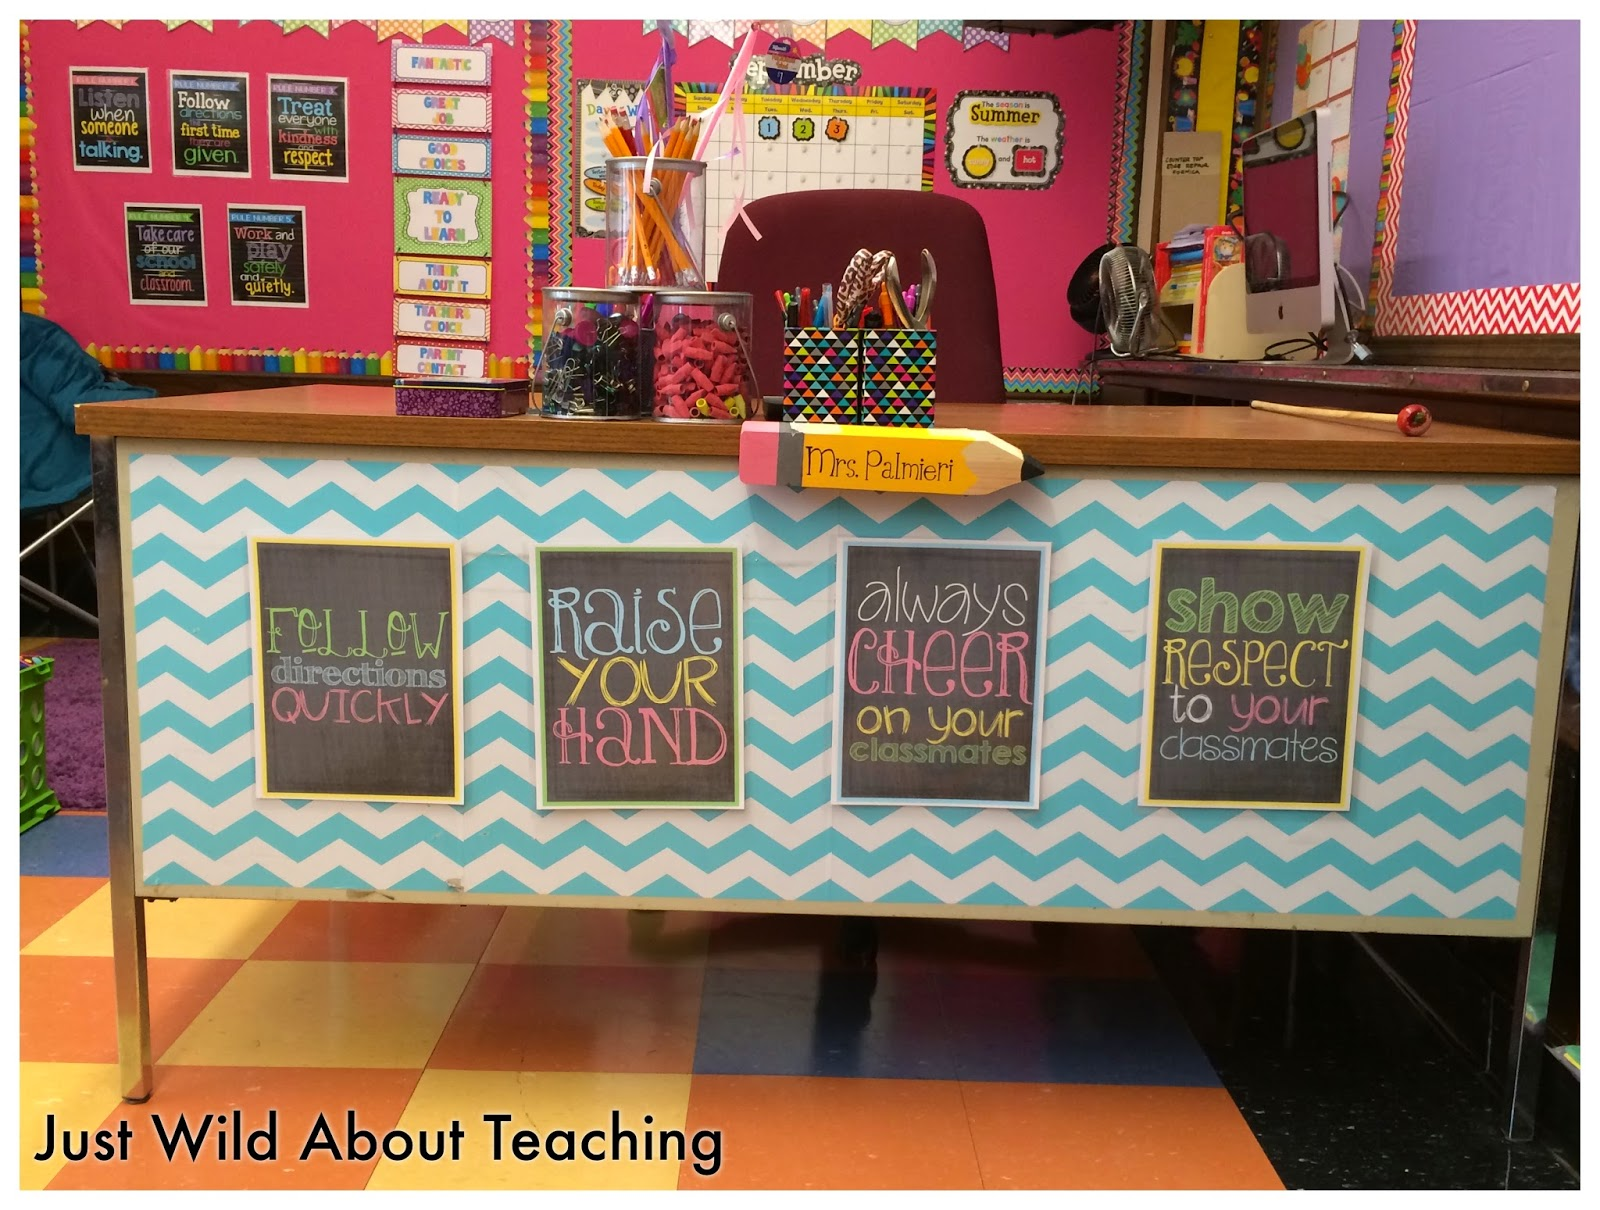 Teacher Classroom Decoration Supplies ~ Just wild about teaching classroom reveal